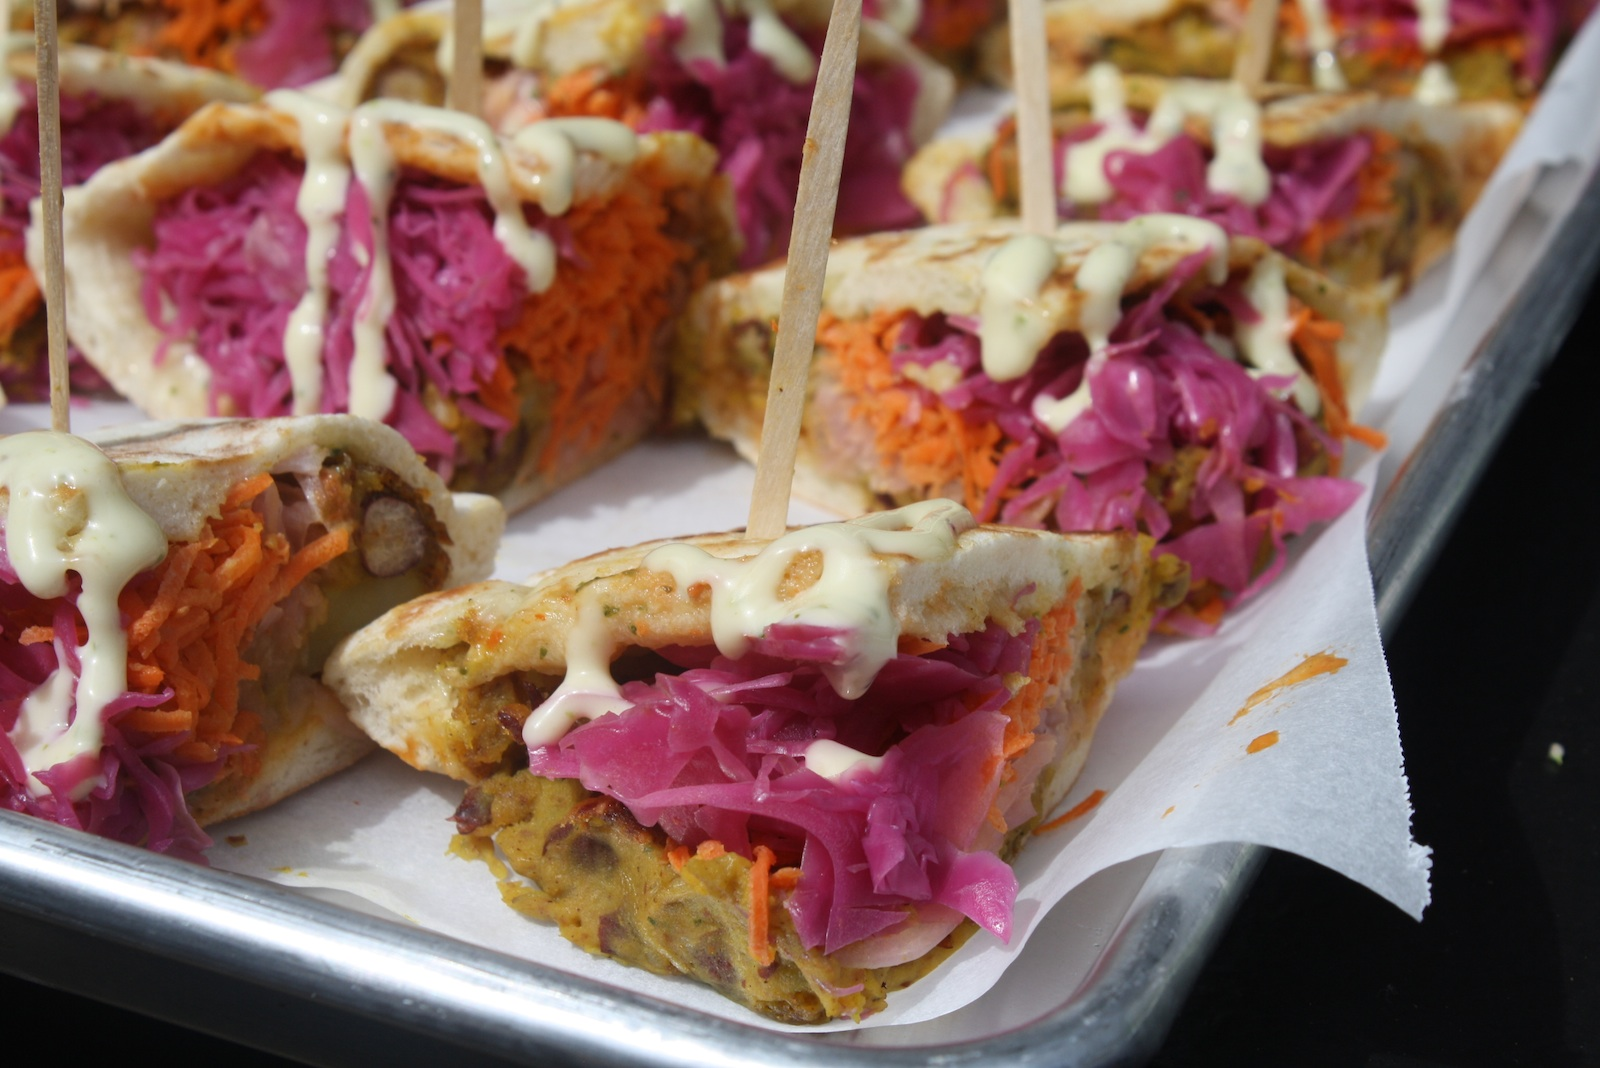 This colorful number, from Kama Food Labs, is an Indian street food sandwich of vegetable fritter in pita bread accessorized by charming pink pickled vegetables and paneer for pinache. Photo by Dan Hirsch.